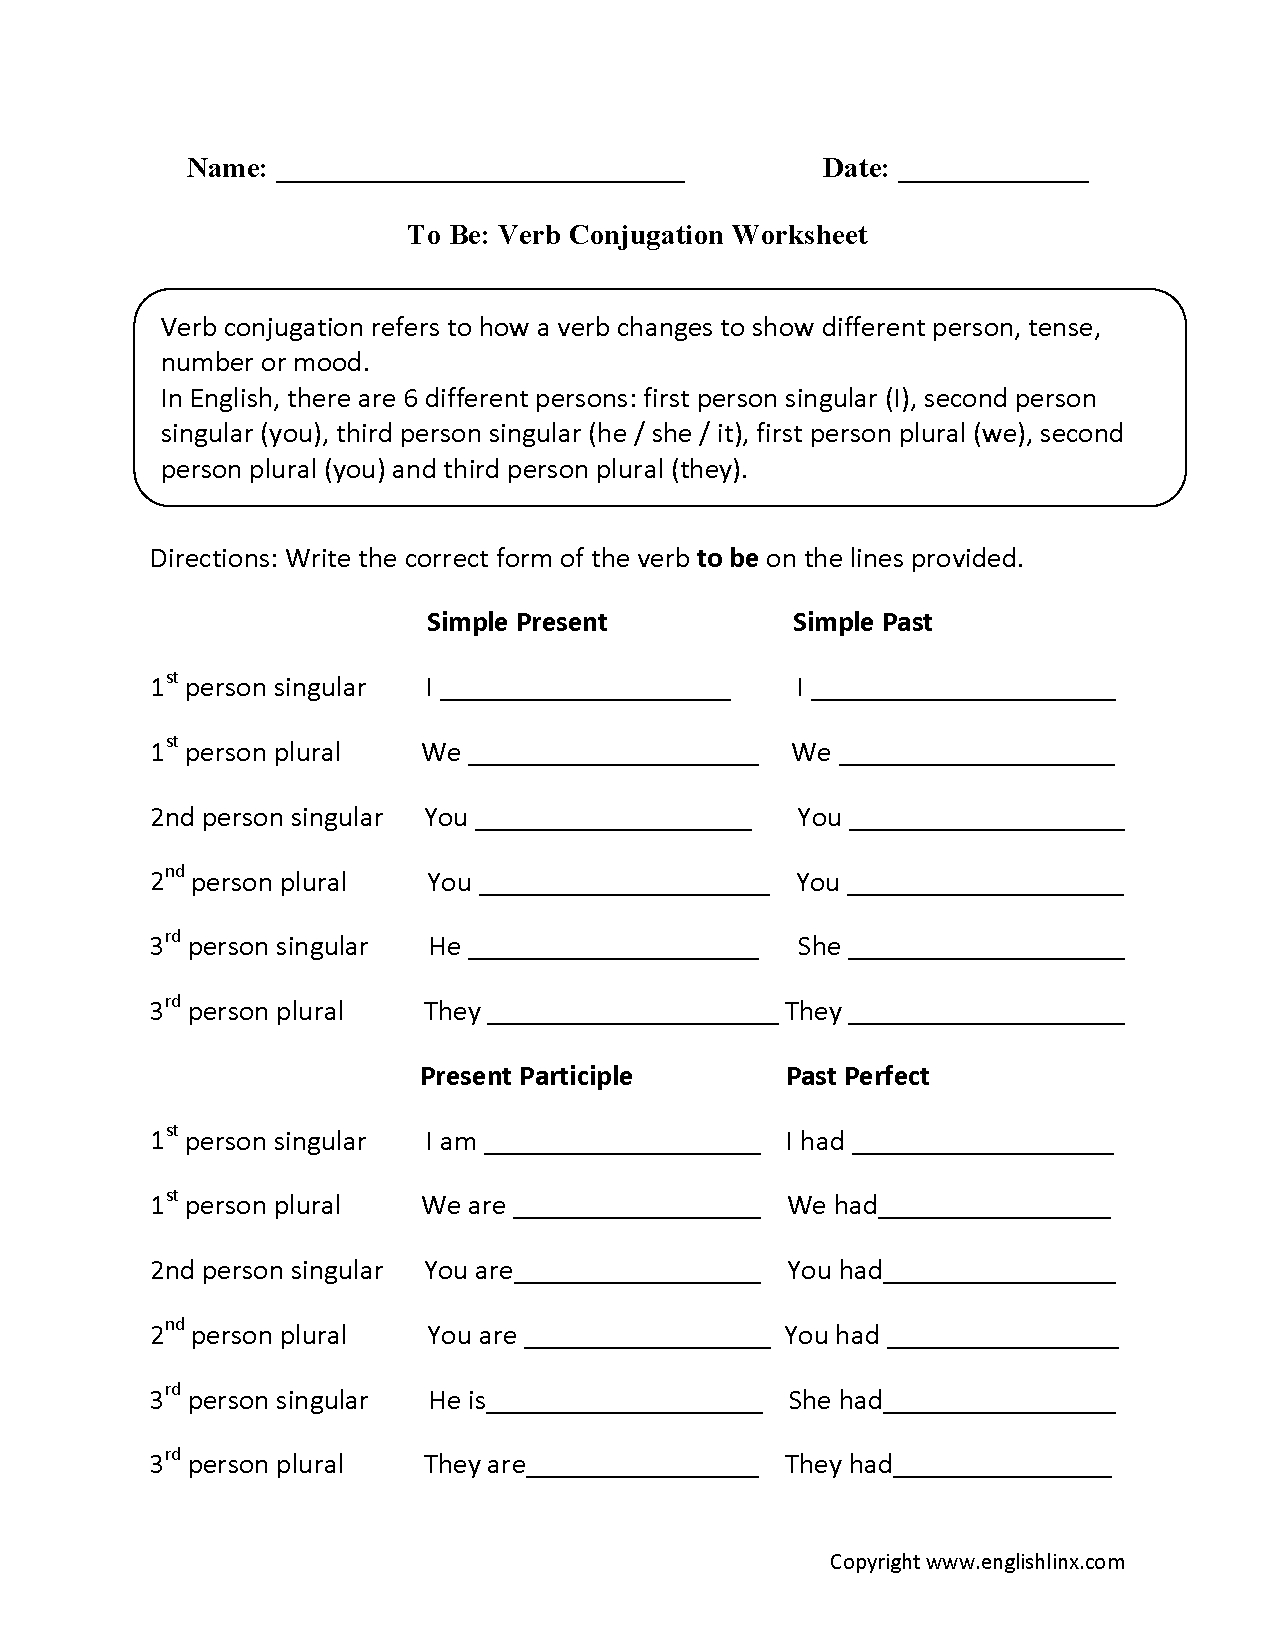 Troublesome Verbs Worksheets With Answers